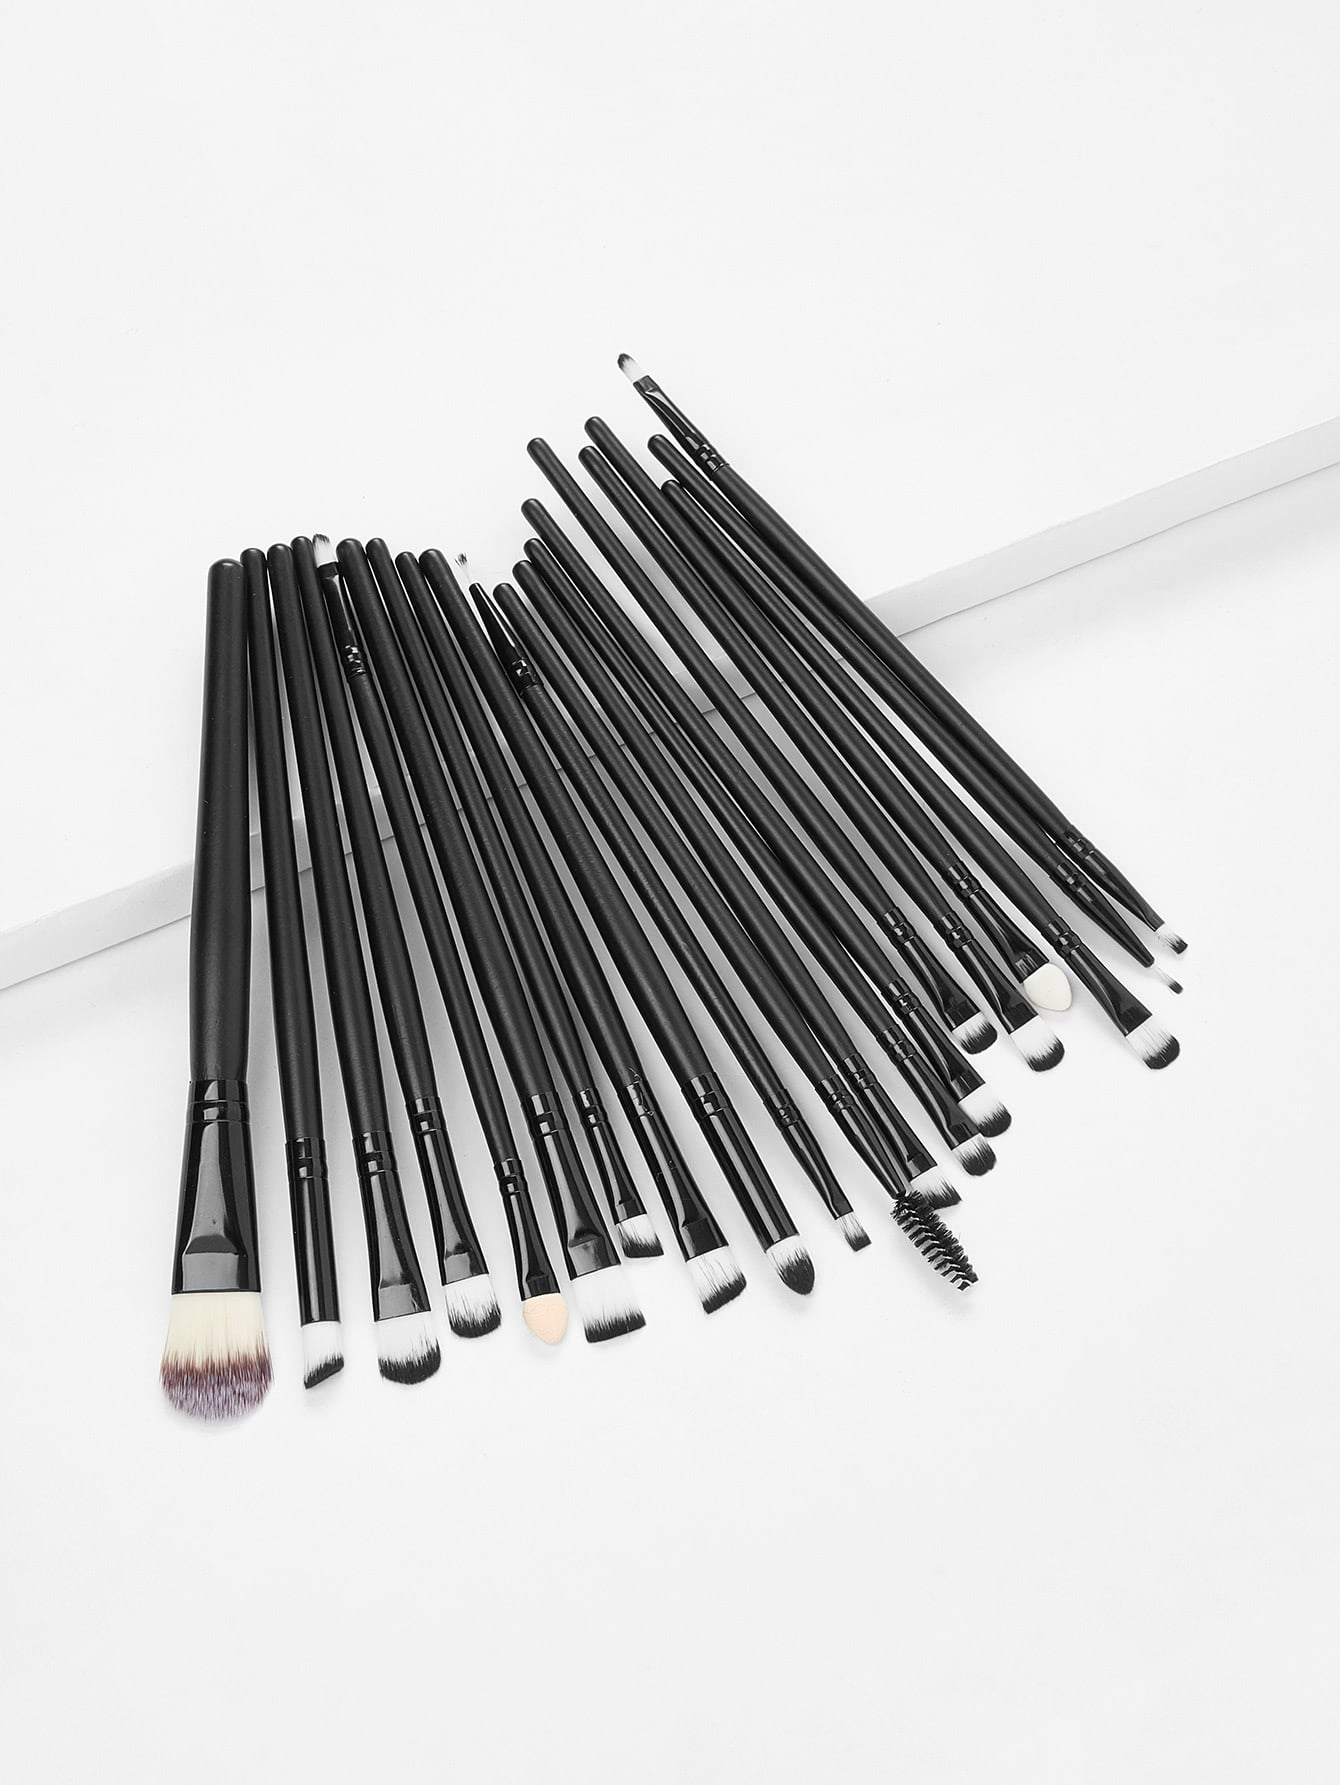 Professional Makeup 20pcs Brushes Set Powder Foundation Eyeshadow Eyeliner professional 12 pcs blending pencil foundation eye shadow makeup brushes eyeshadow eyeliner